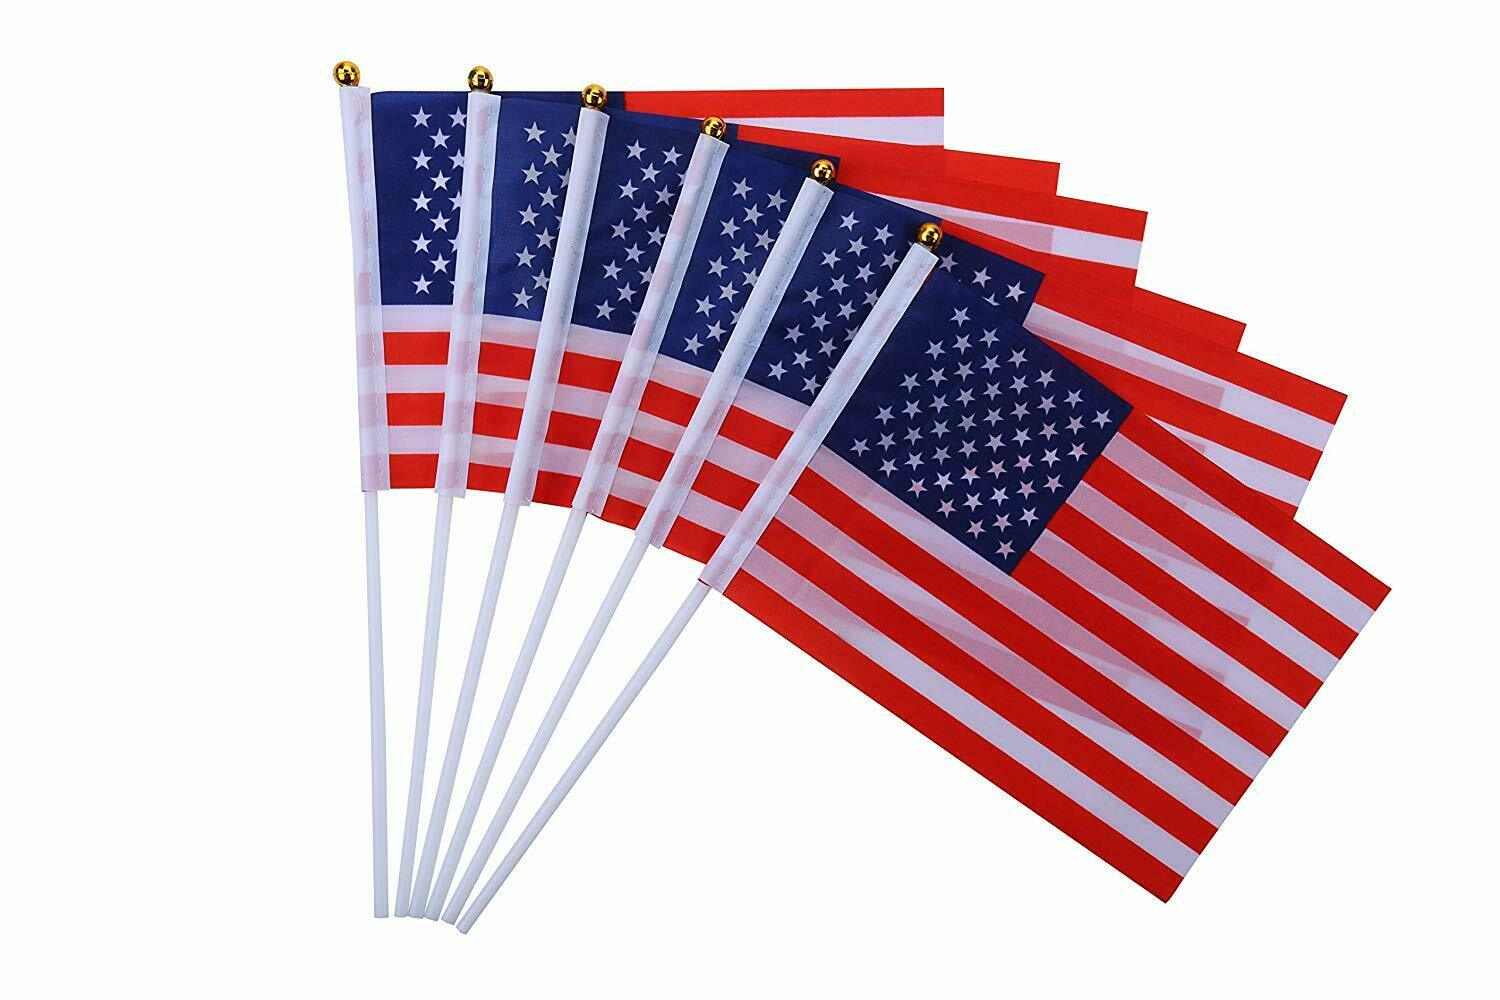 50 Pcs Small America Stick Flags, International World Stick